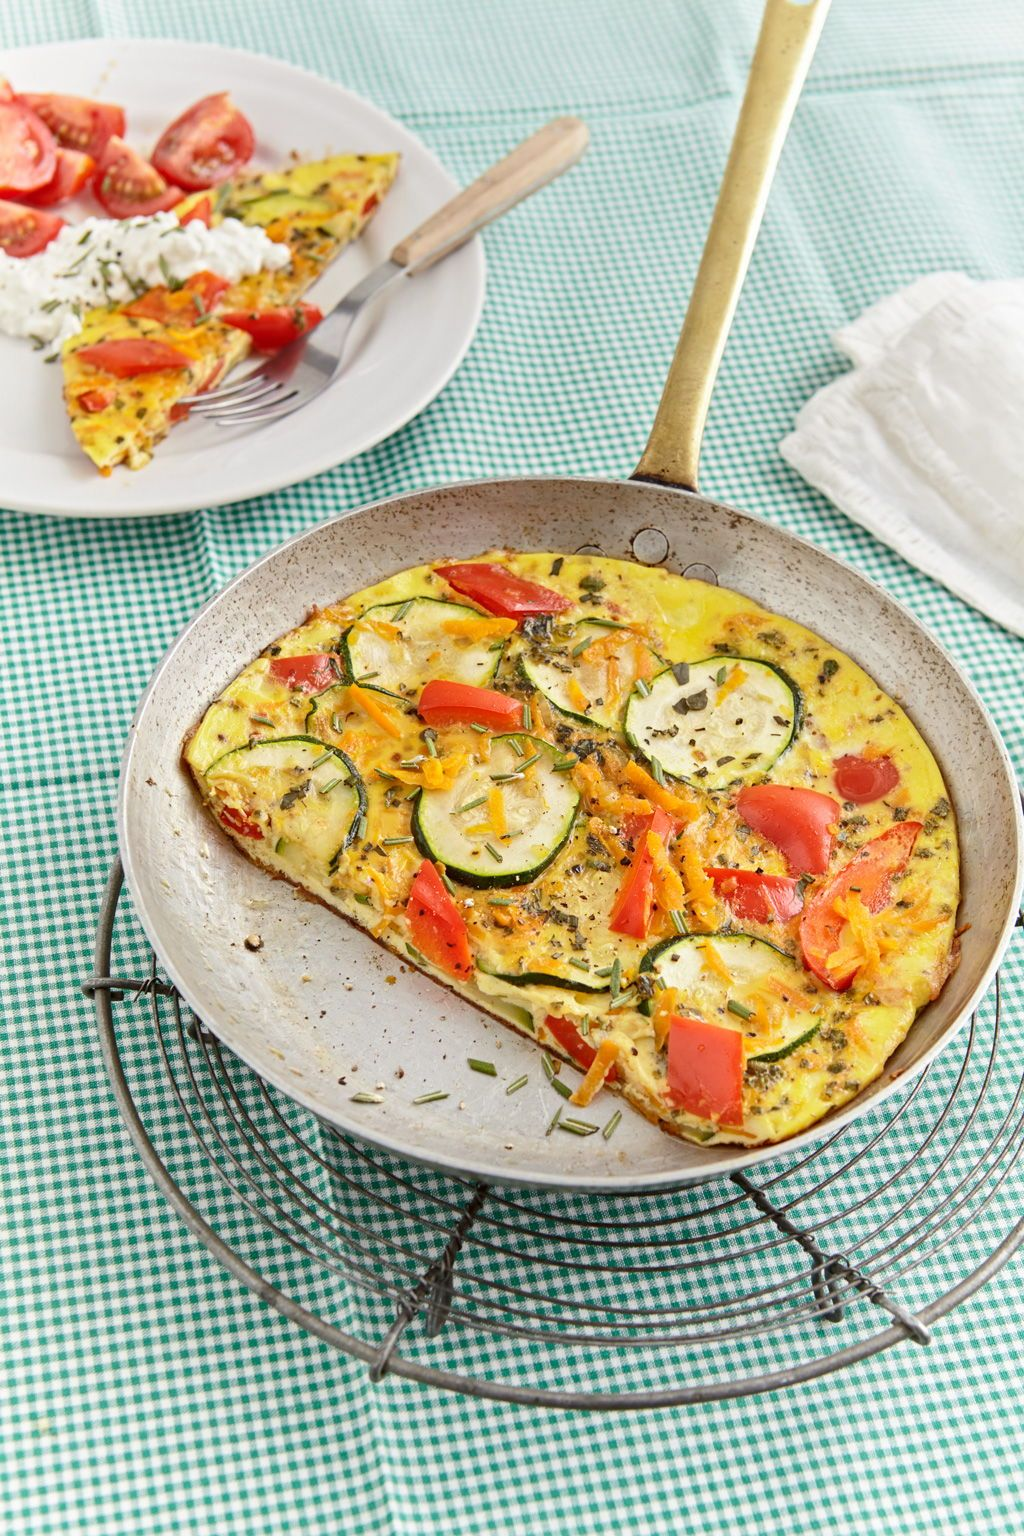 Photo of Zucchini, pepper and carrot frittata with cottage cheese and tomatoes from Keksilein93 | Chef